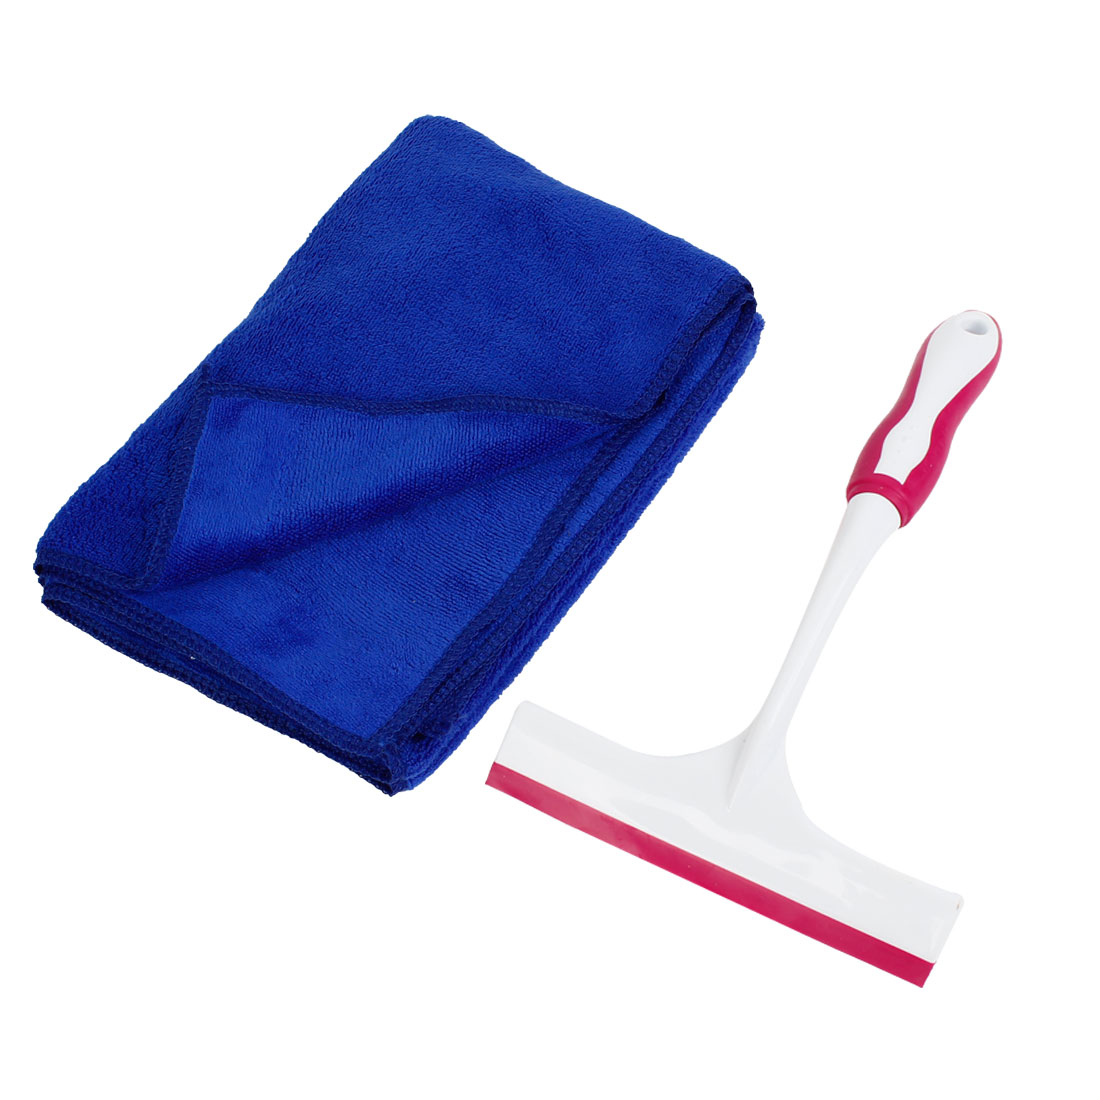 Car Blue 60 x 40cm Microfiber Cleaning Cloth Towel w Window Film Scraper